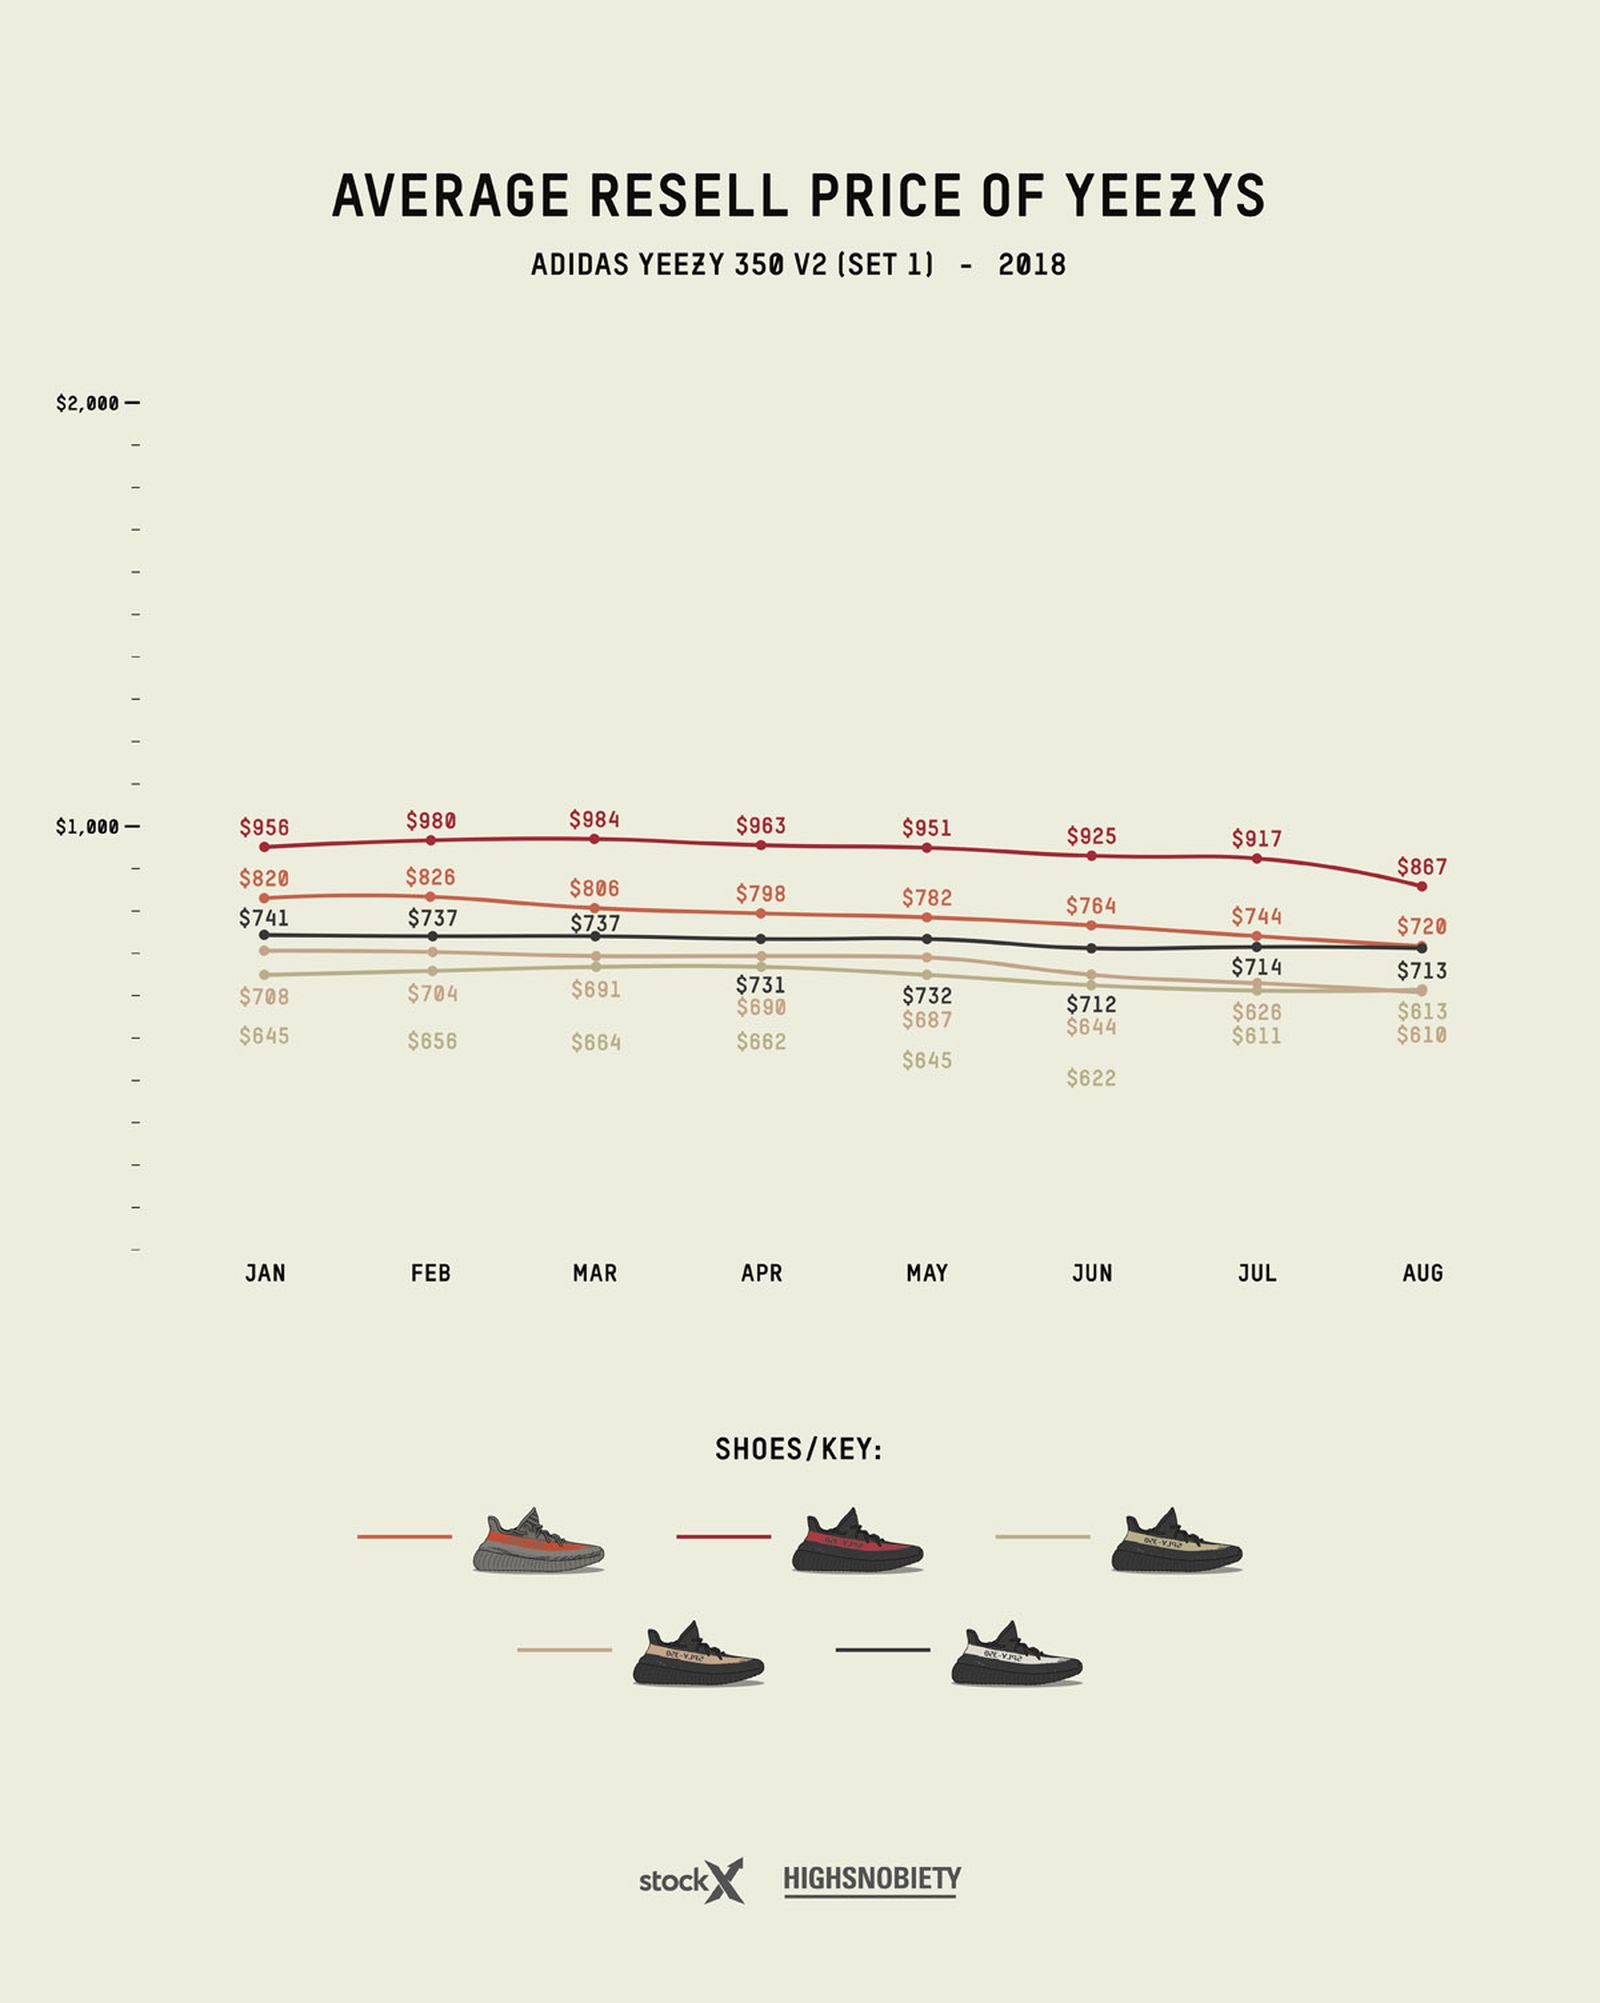 yeezy resell price guide 2019 update adidas Originals YEEZY Boost kanye west